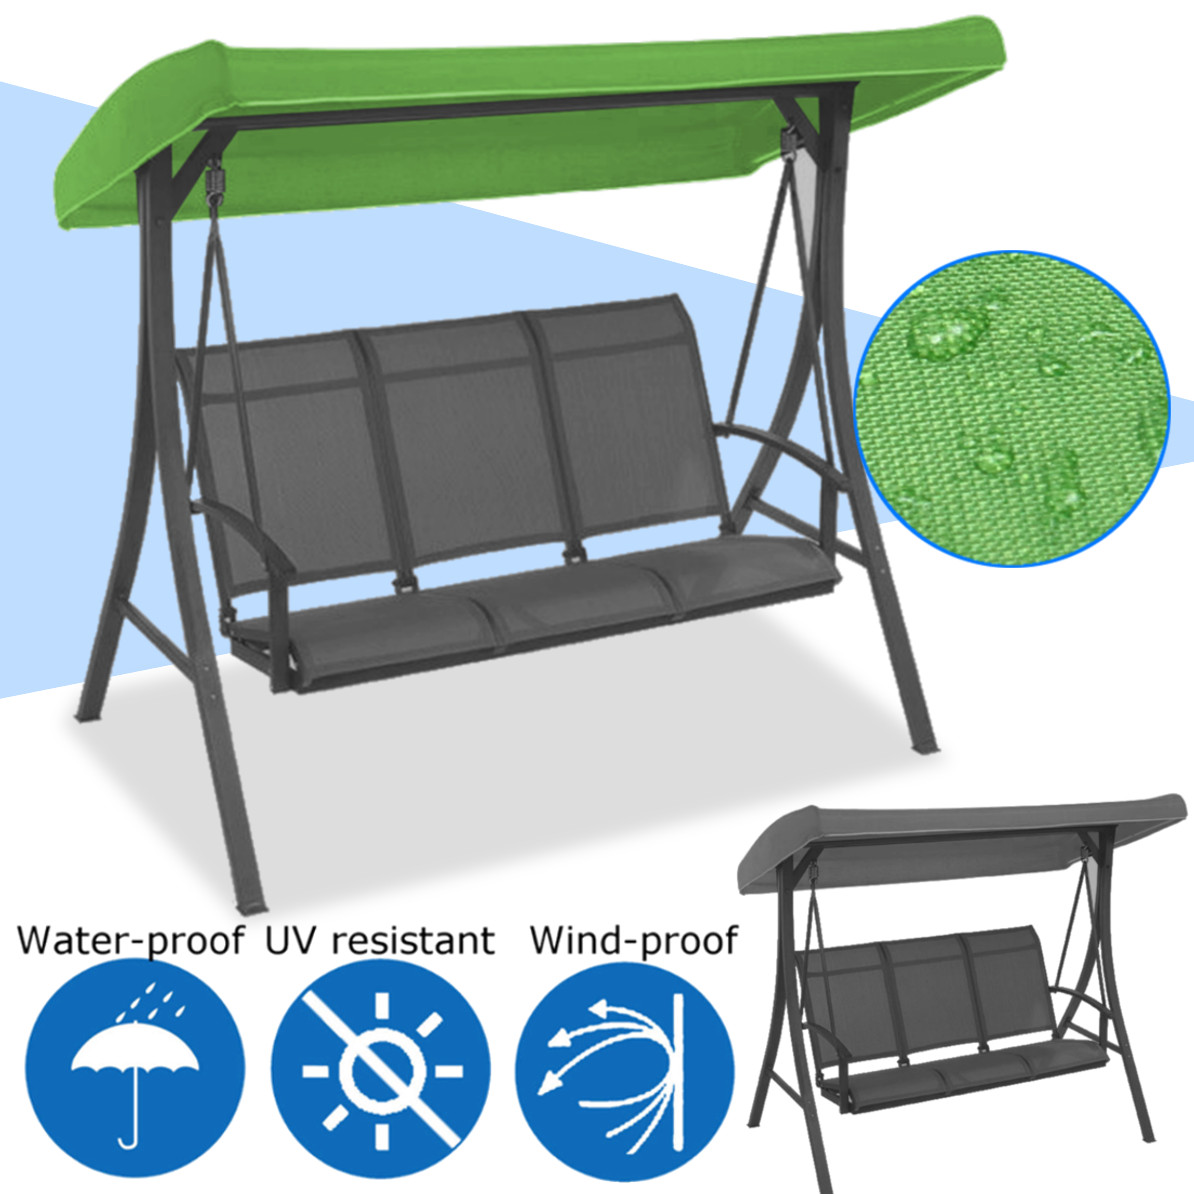 Camping Chair With Canopy Us 17 5 49 Off 191x120x23cm Canopy Waterproofed Swing Chair Tent Sunshade Camping Swing Roof Replacement Garden Supplies Fabric Sun Shade In Shade